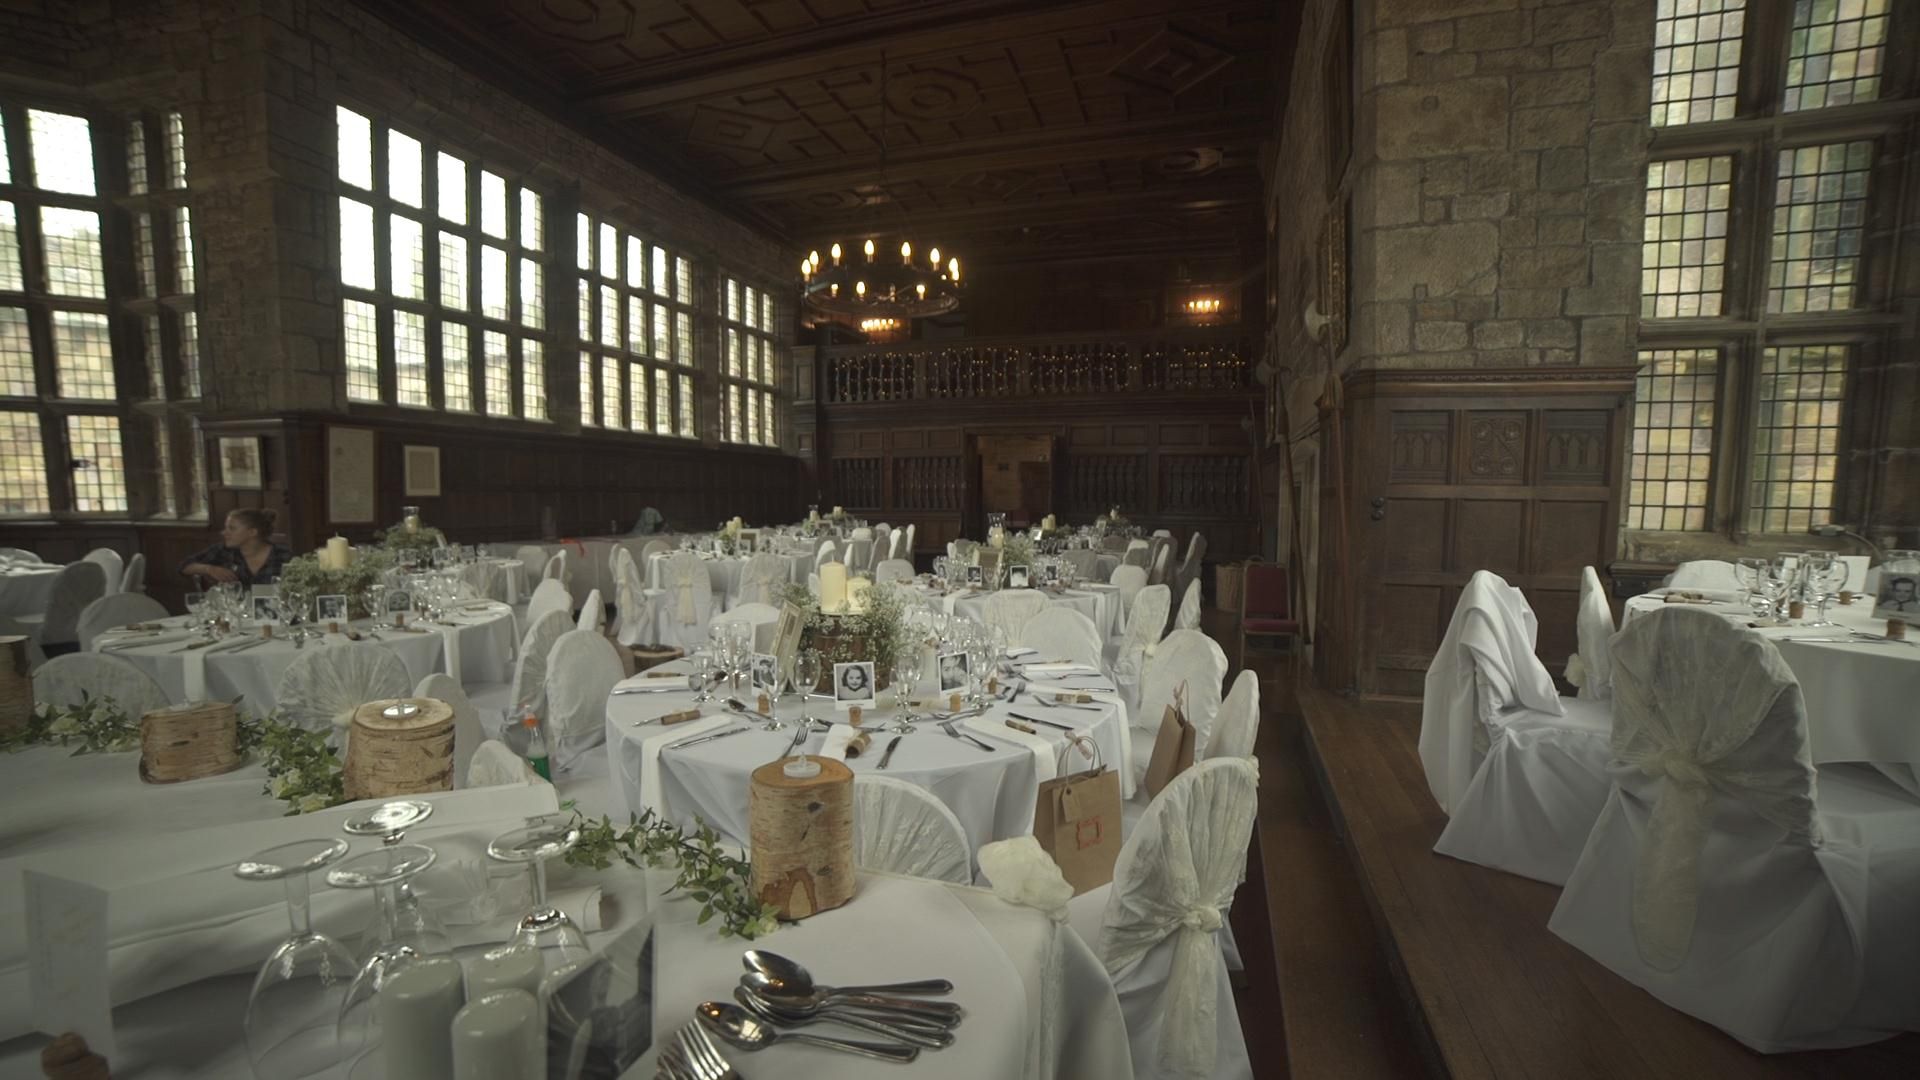 Hoghton Tower dining hall